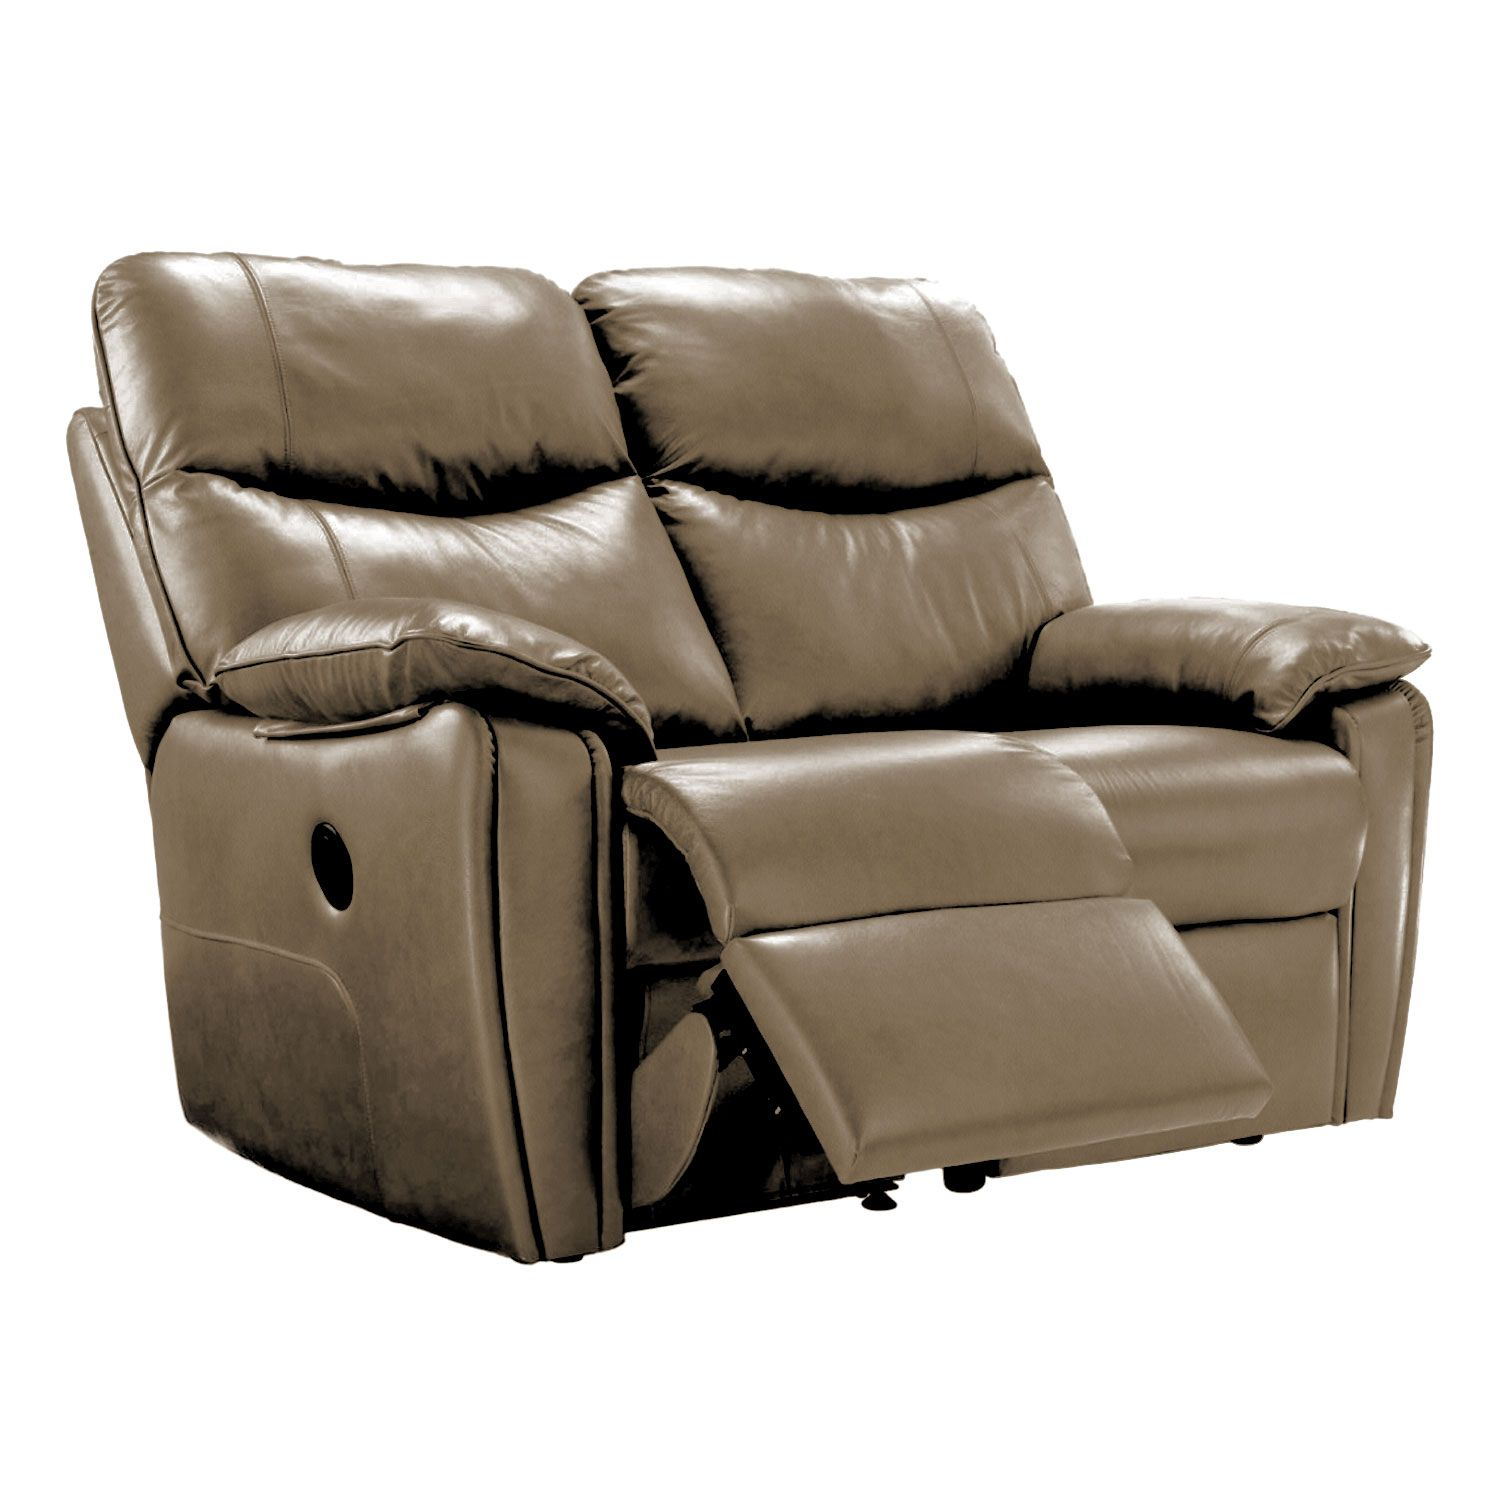 G Plan Henley 2 Seater Double Power Recliner Leather Sofa